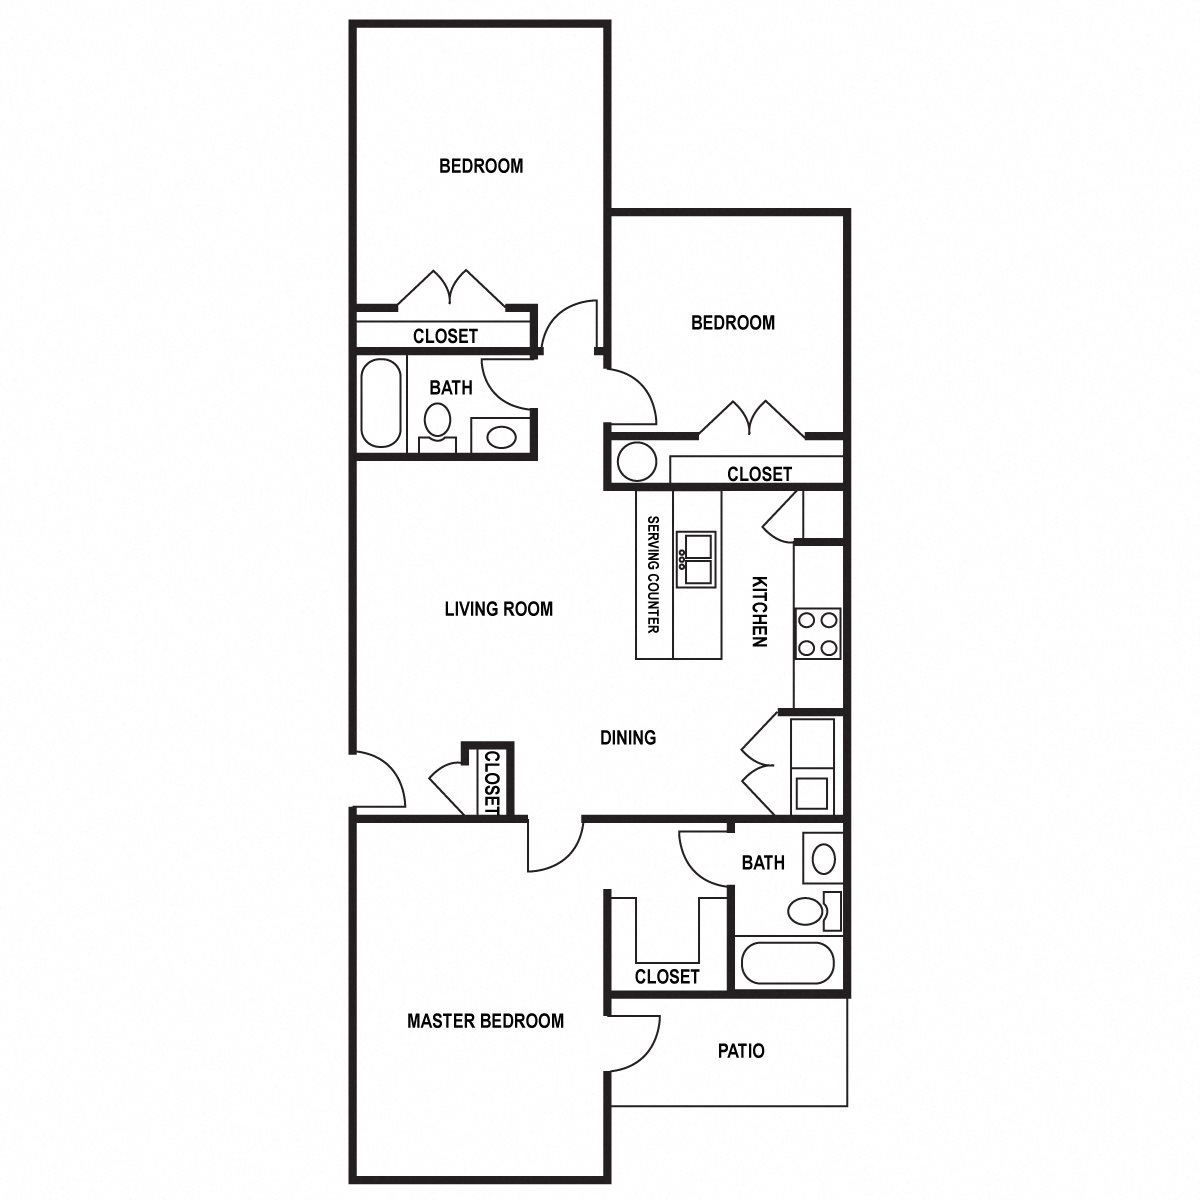 Floor Plans Of Clemmons Station In Clemmons, NC